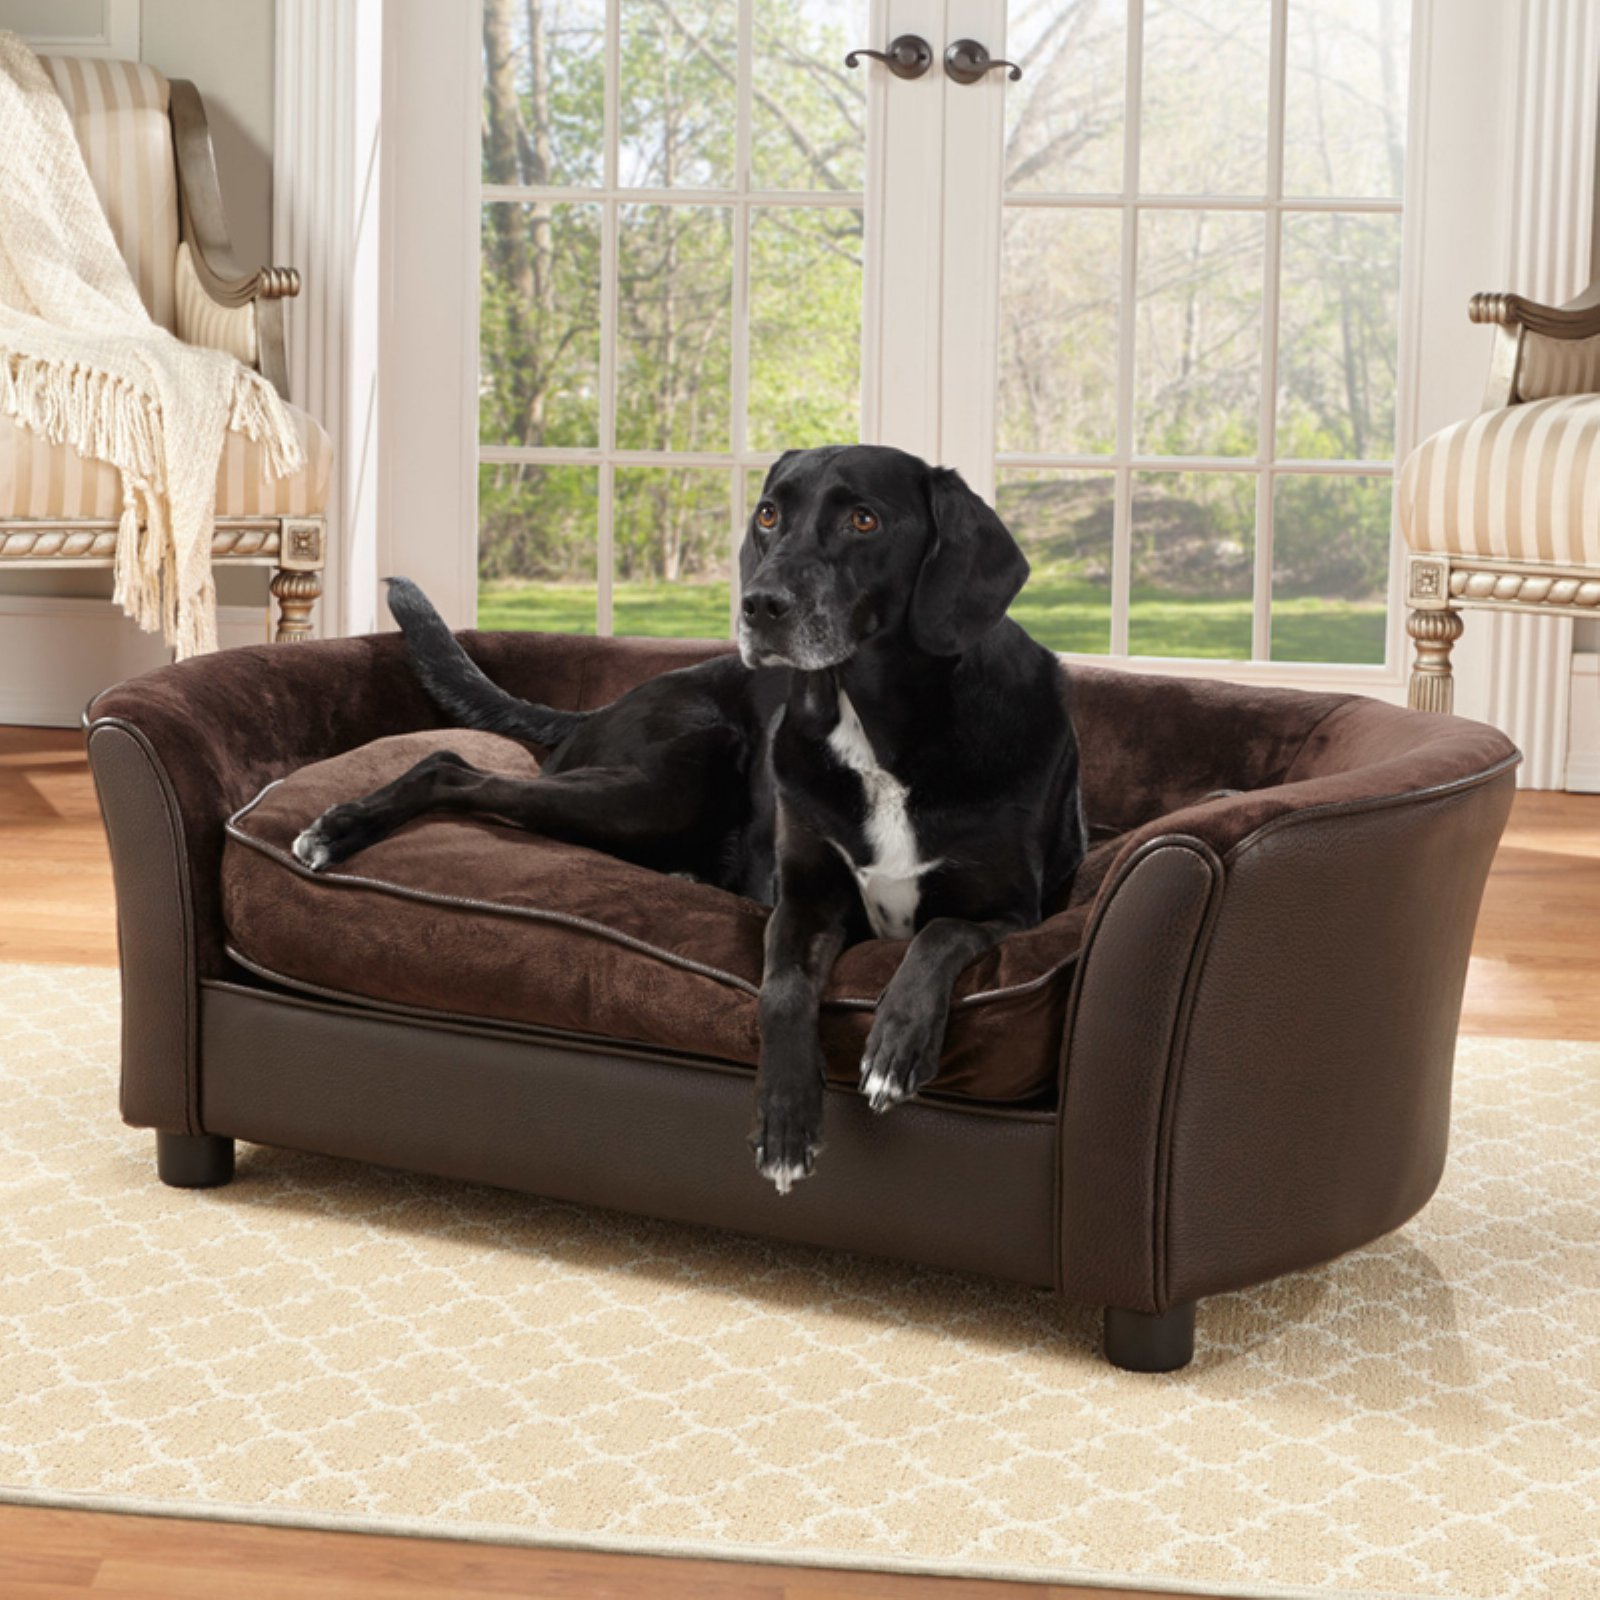 Superieur Enchanted Home Pet Panache Dog Sofa, Medium, Brown